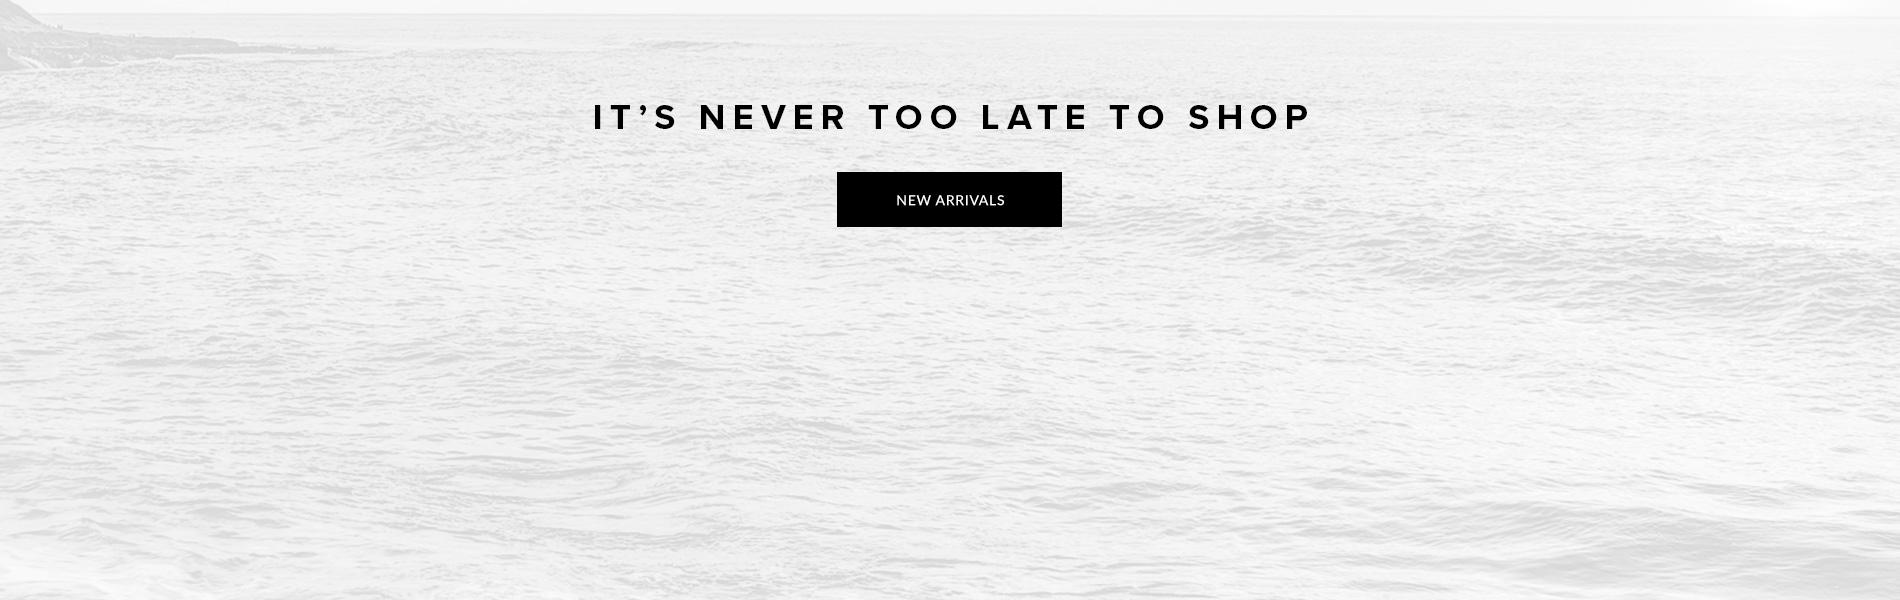 It's Never Too Late To Shop - New Arrivals.